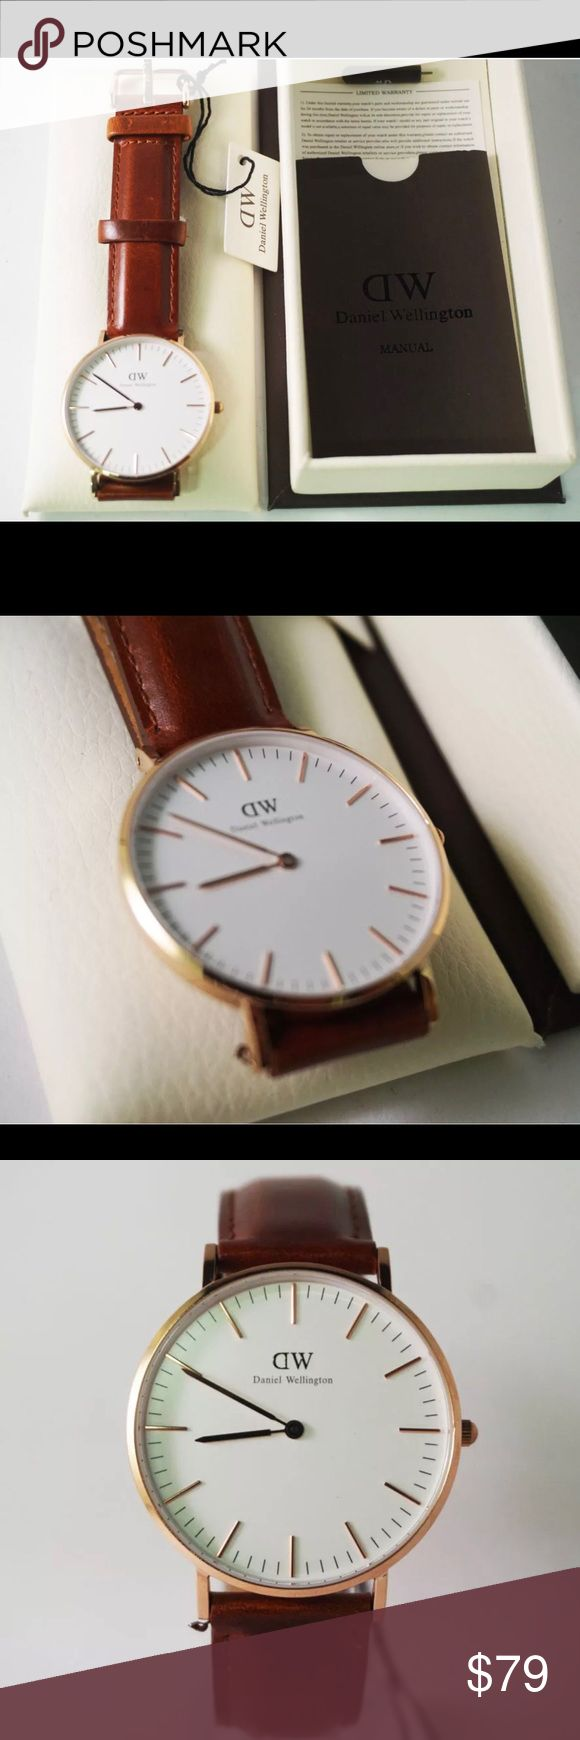 ‼️LIMITED STOCK‼️ DANIEL WELLINGTON CLASSIC WATCH Brand New 36mm Comes with box, international warranty card and tool Daniel Wellington Accessories Watches